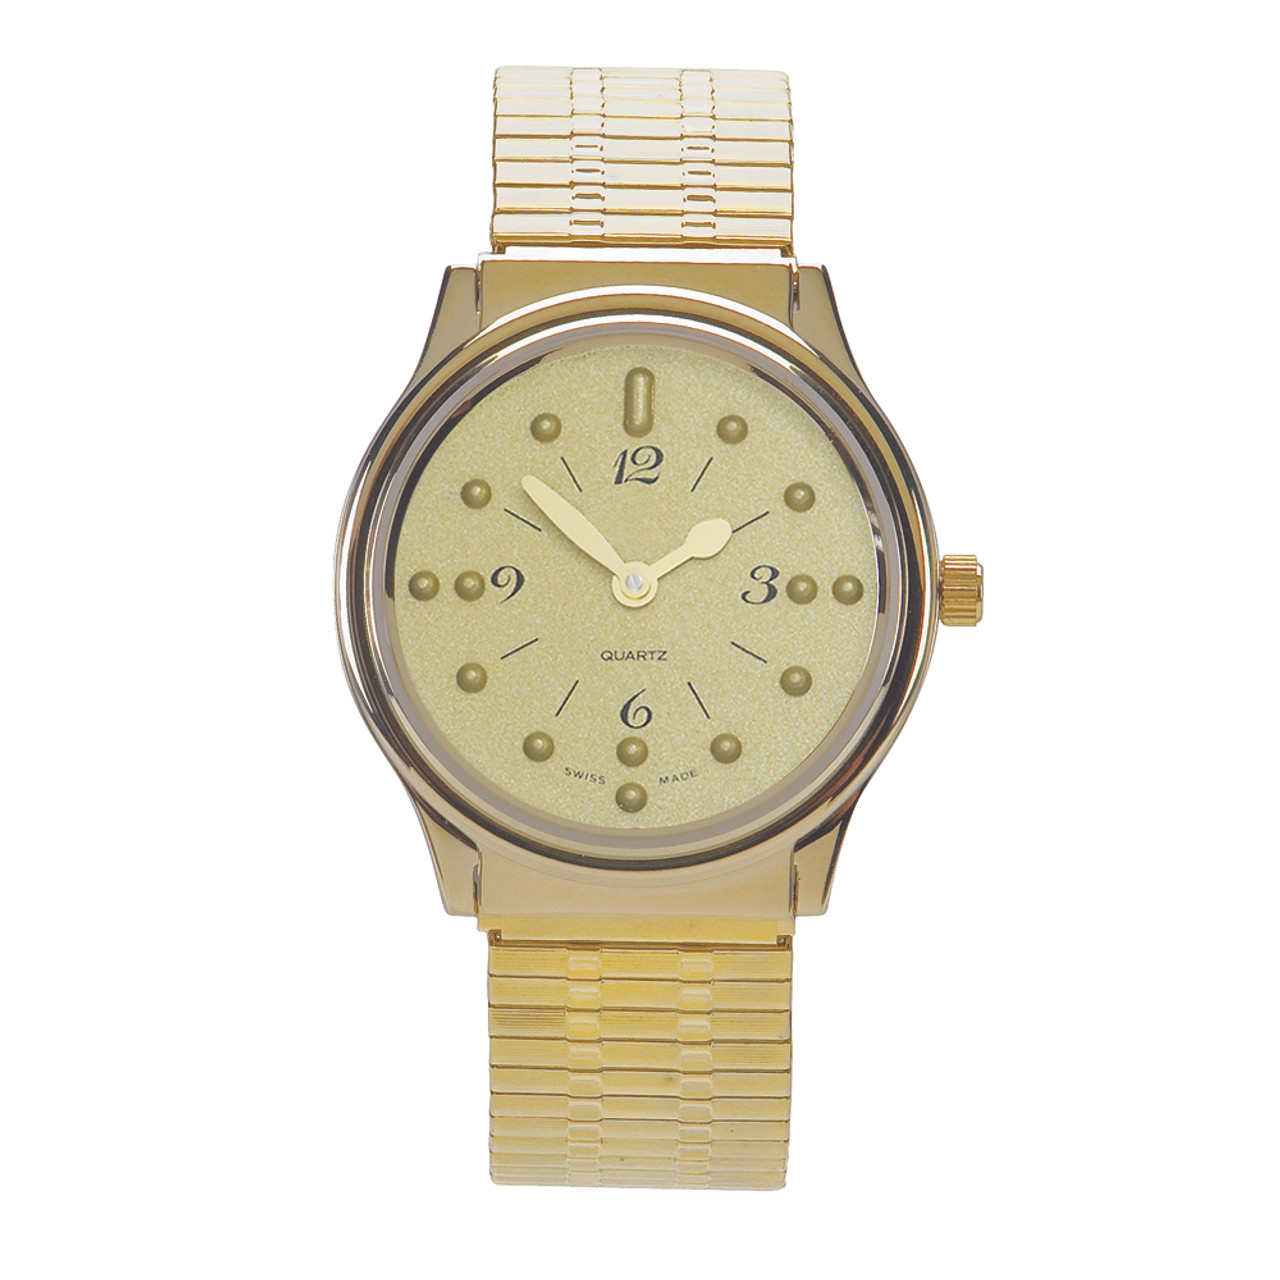 Men's Montiel Braille Watch Gold face, gold case, expansion band